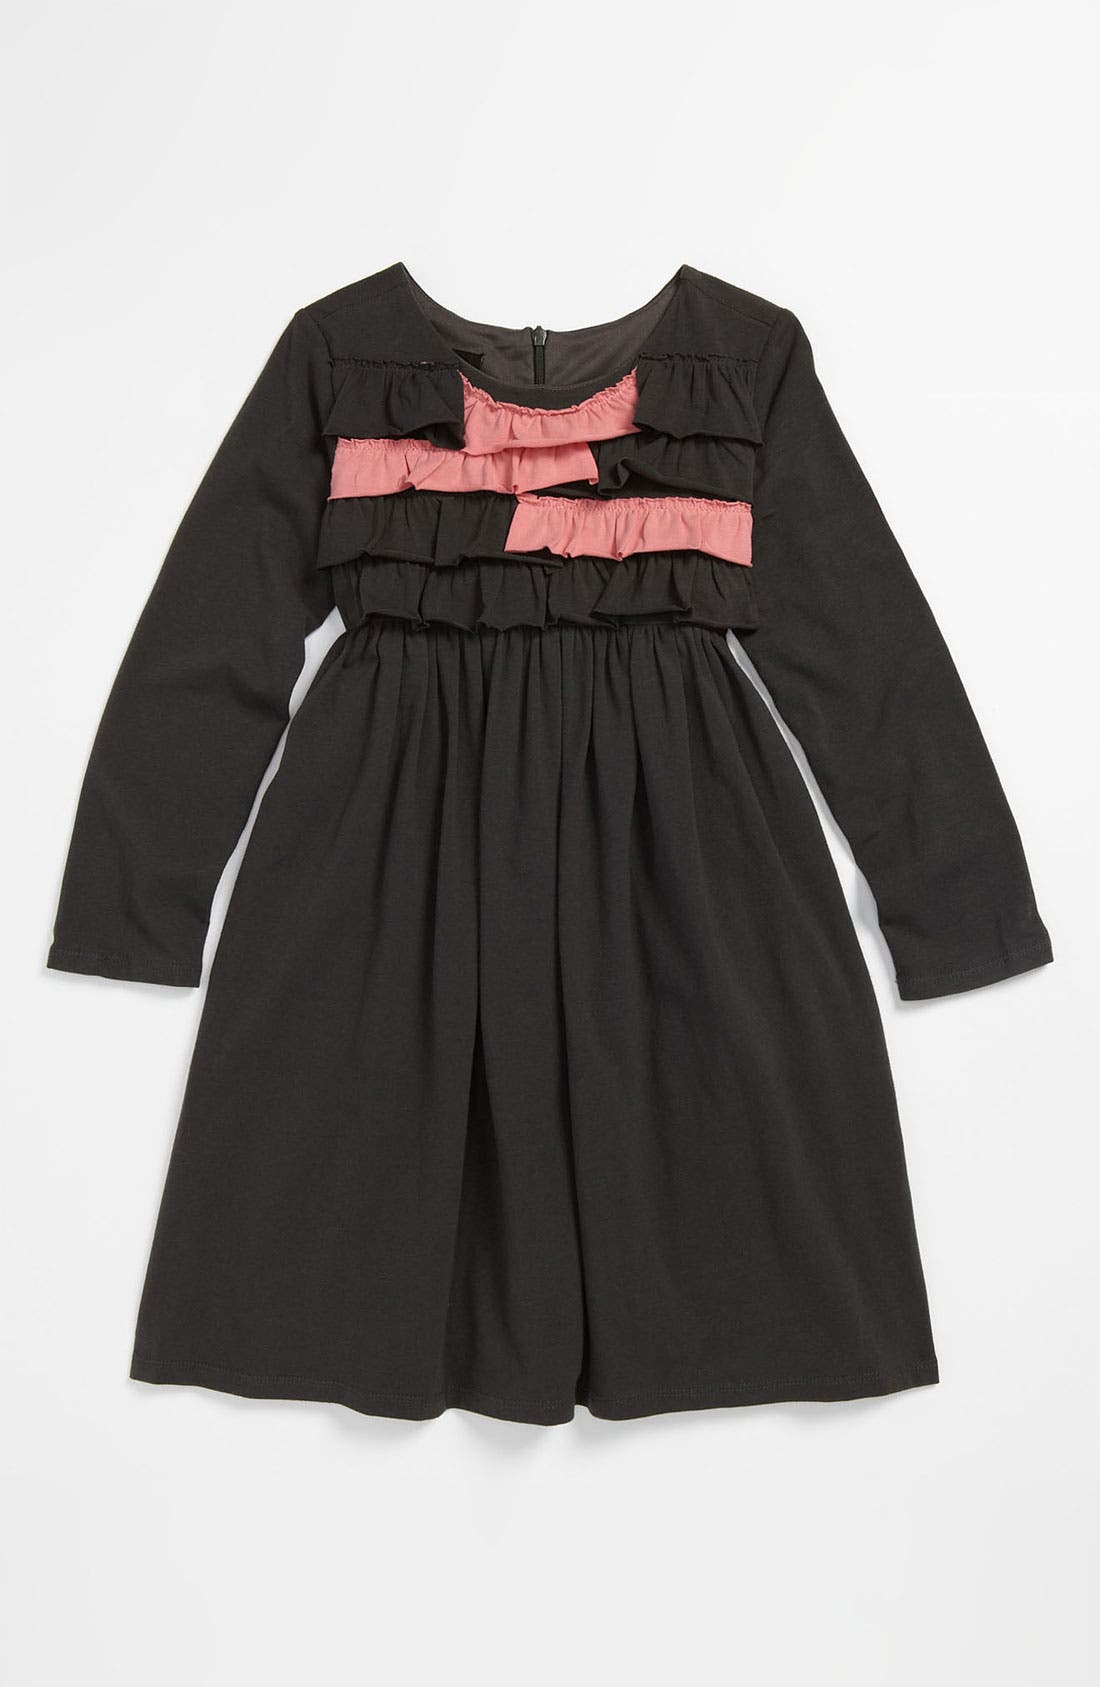 Main Image - Isobella & Chloe 'Darlene' Dress (Little Girls & Big Girls)